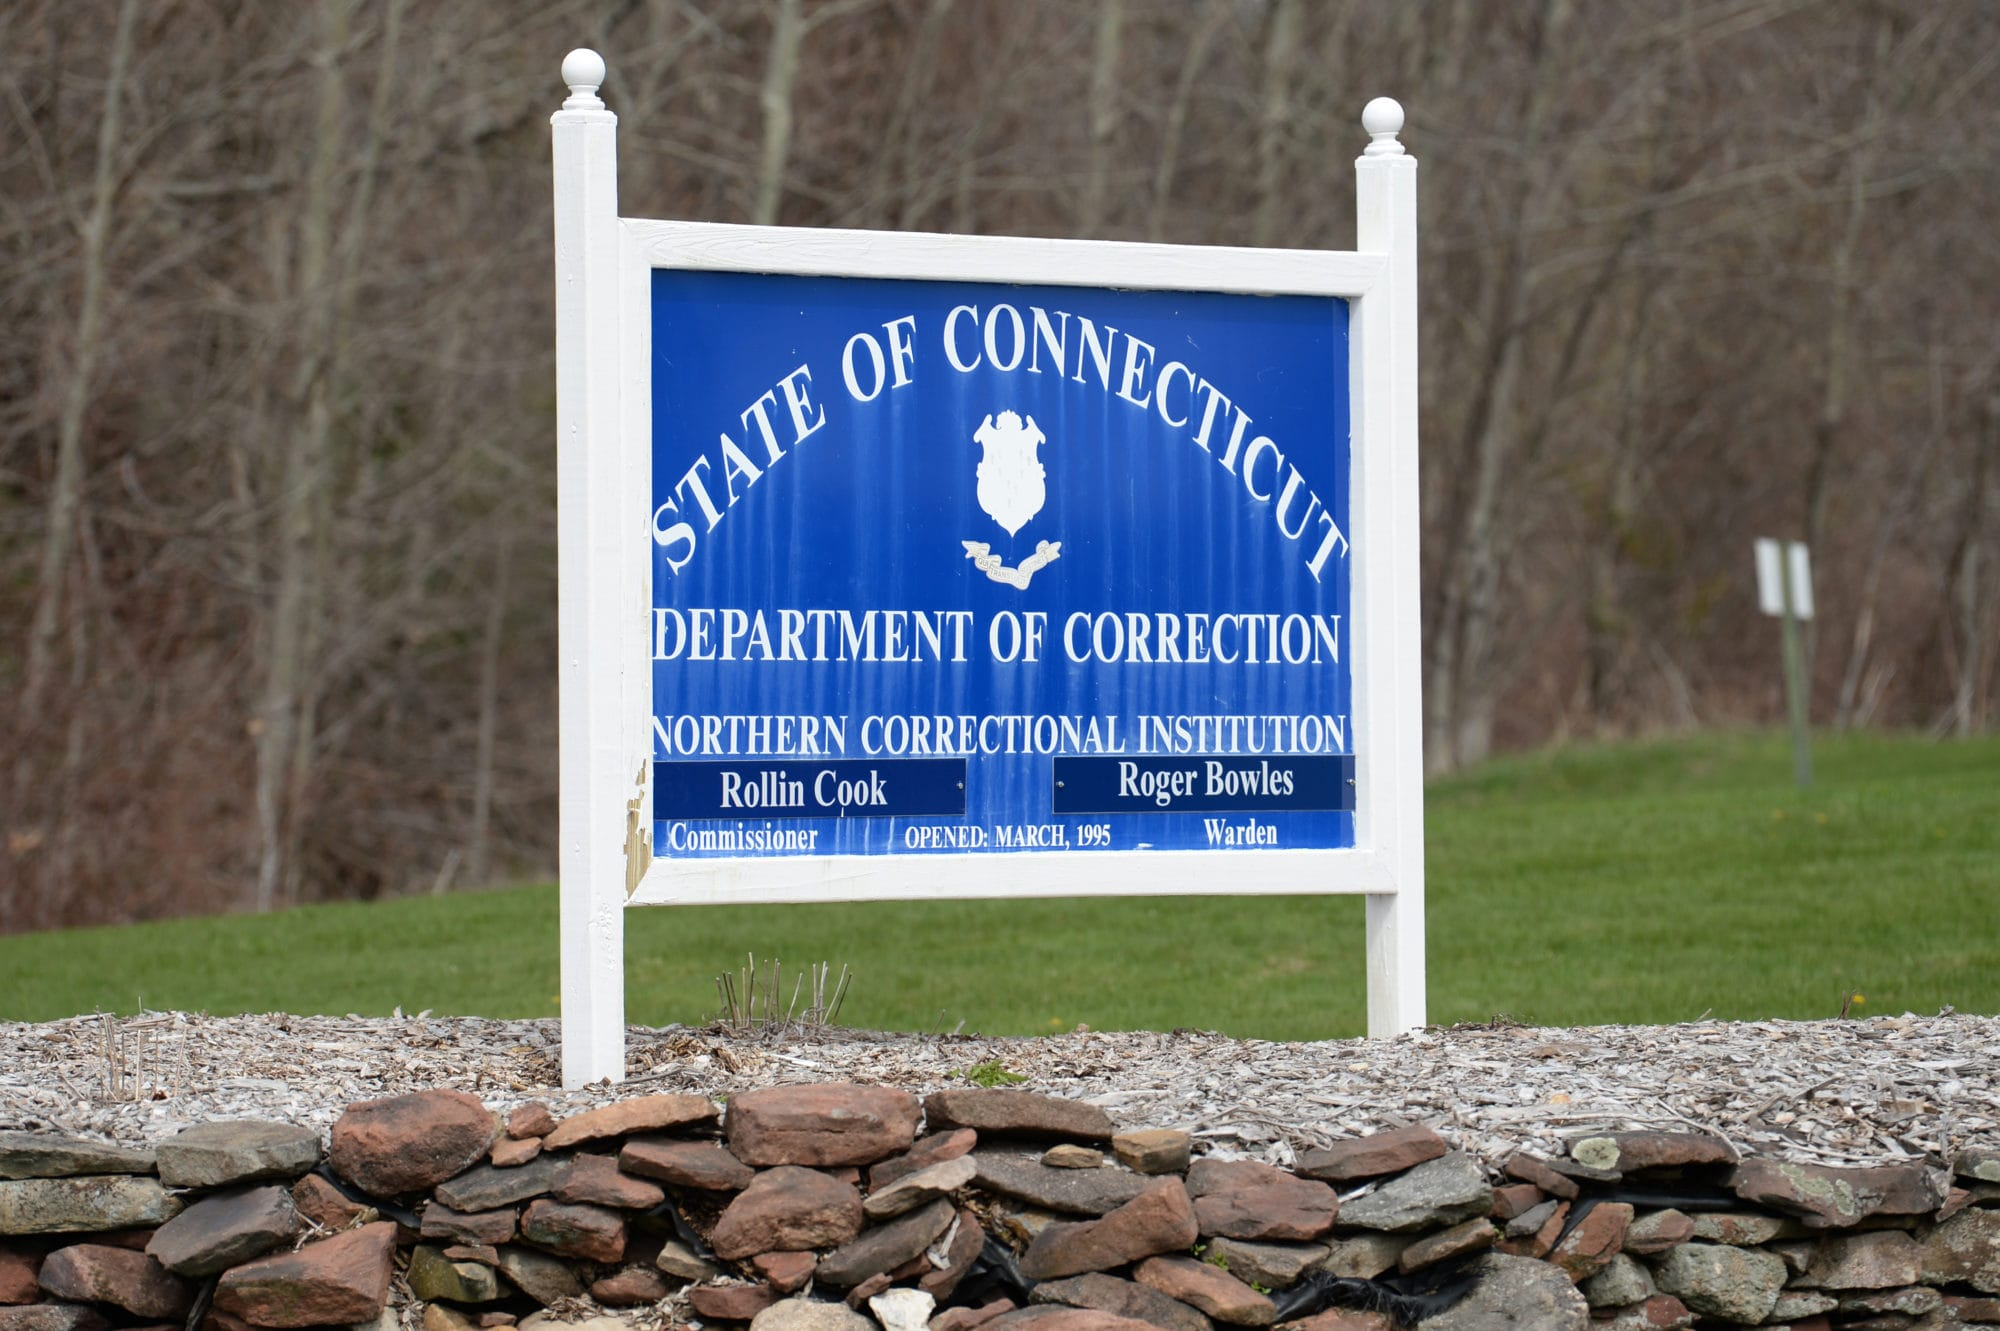 Lawsuit over solitary confinement in limbo as state pushes for mediation